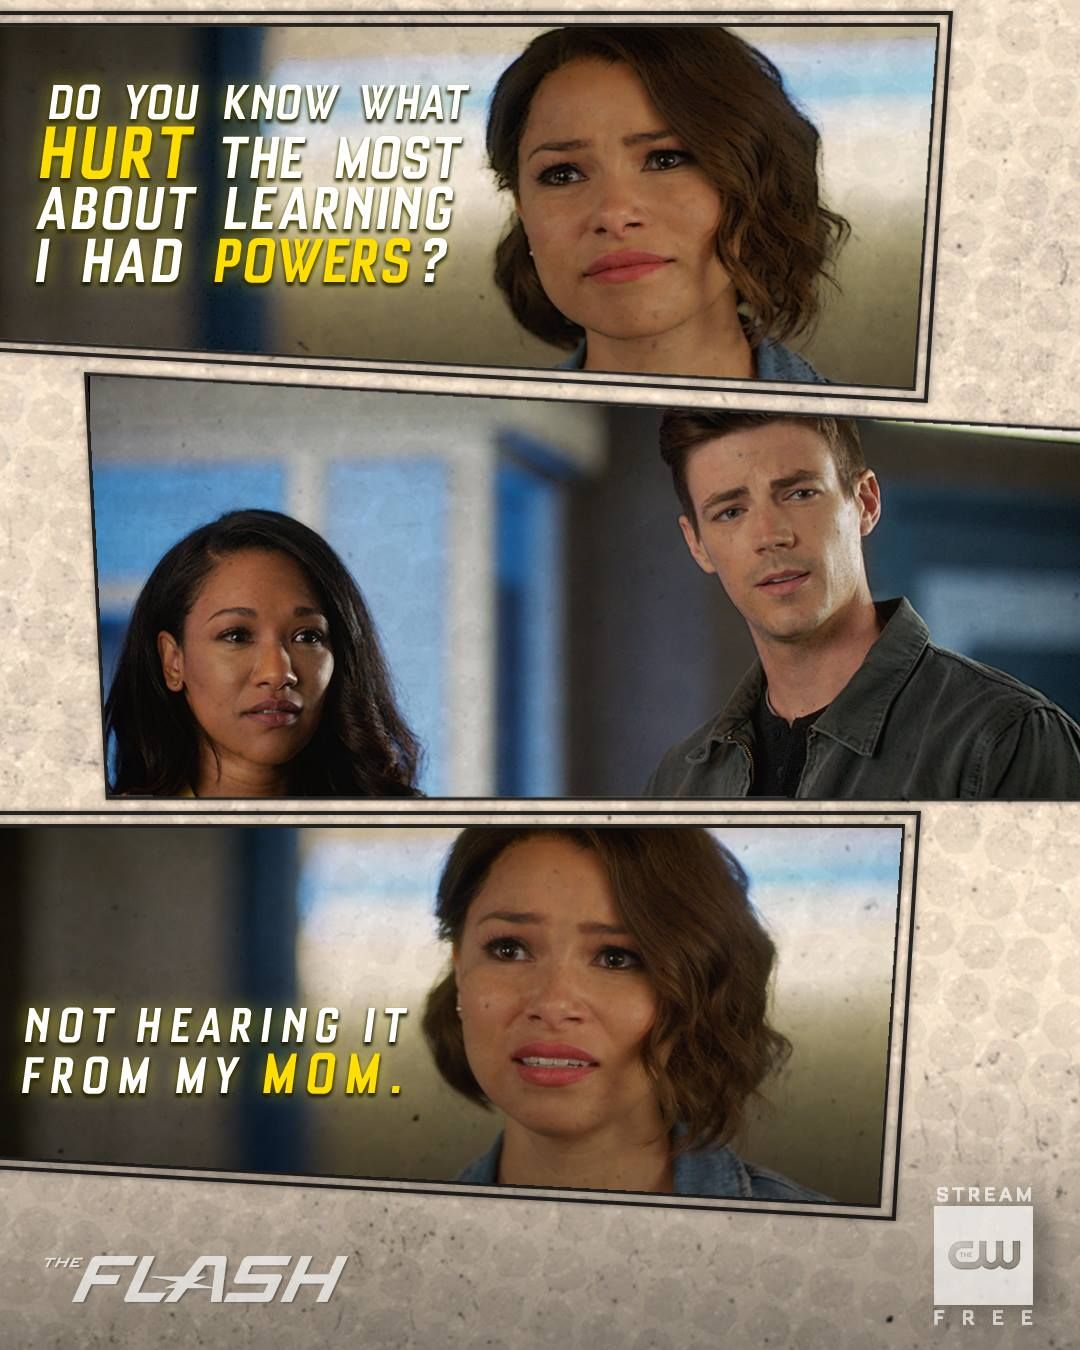 S5 Ep4 News Flash Stream Theflash For Free Only On The Cw